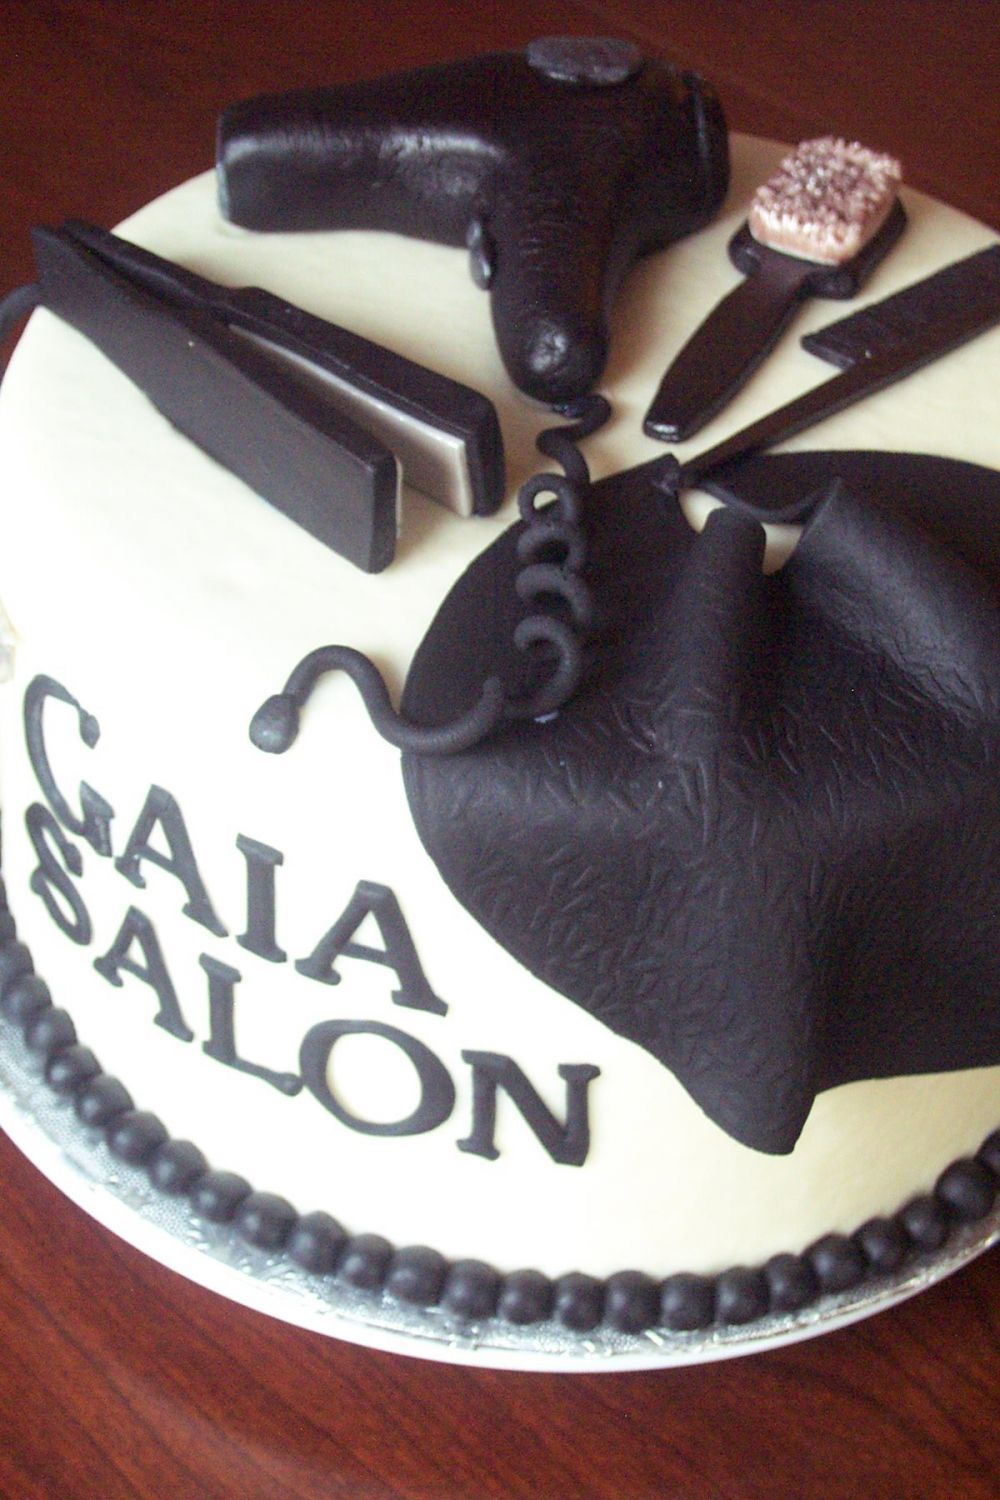 A Thank You Cake To My Stylist Other Cakes Cosmetology Cake Cake Hair Stylist Cake